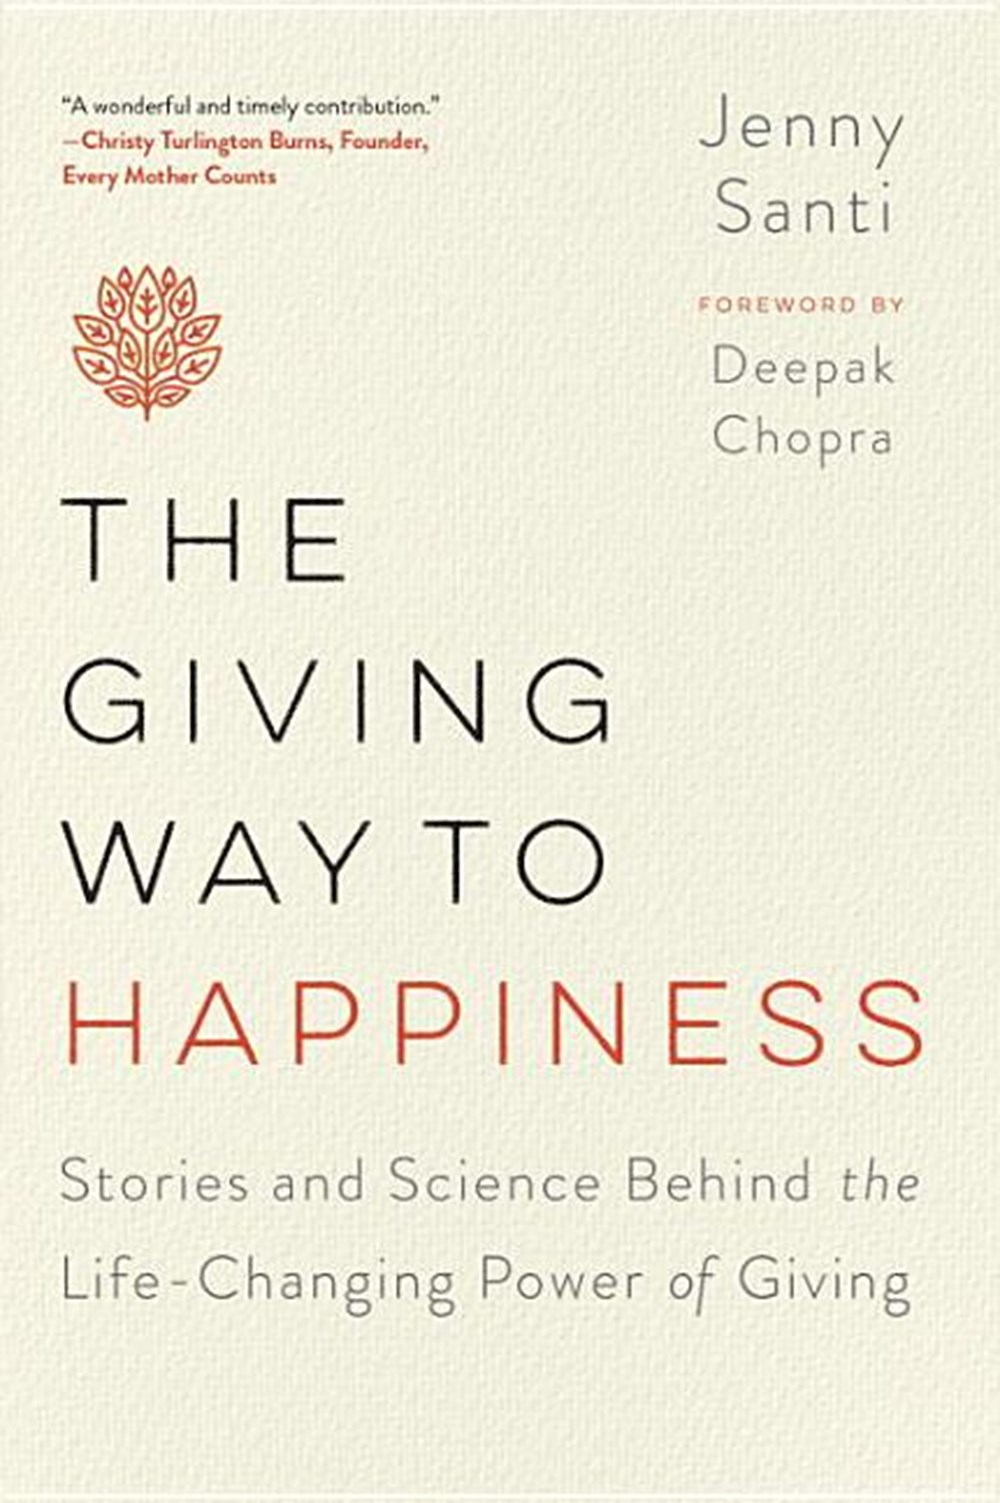 Giving Way to Happiness Stories and Science Behind the Life-Changing Power of Giving